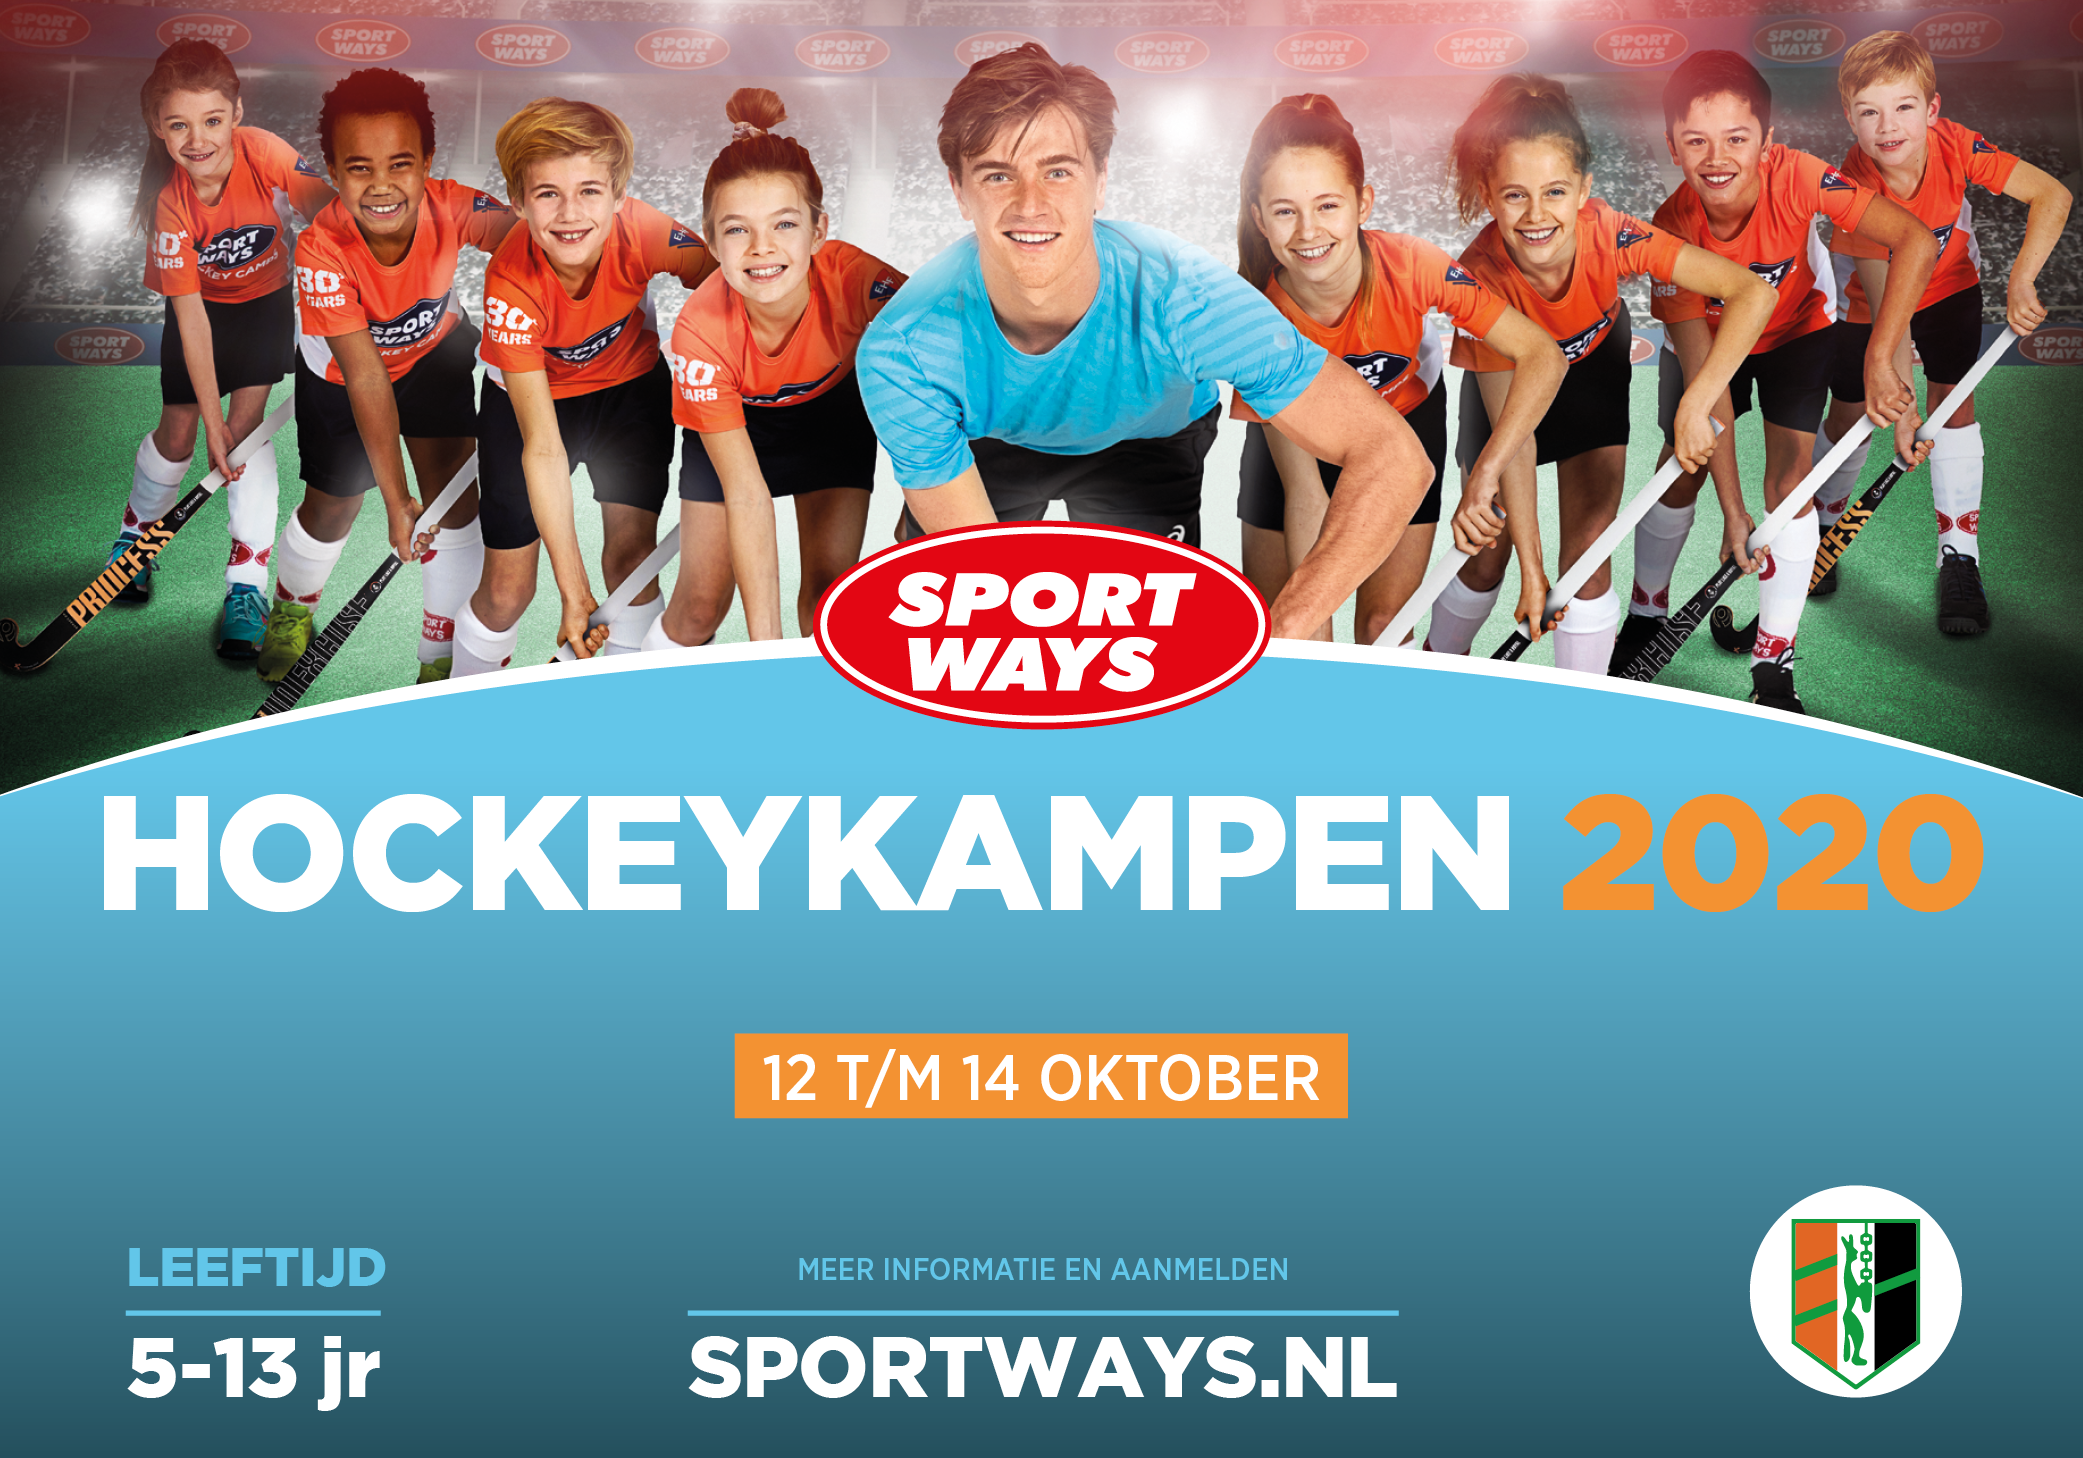 SportWays hockeykampen in 2020 op HIC